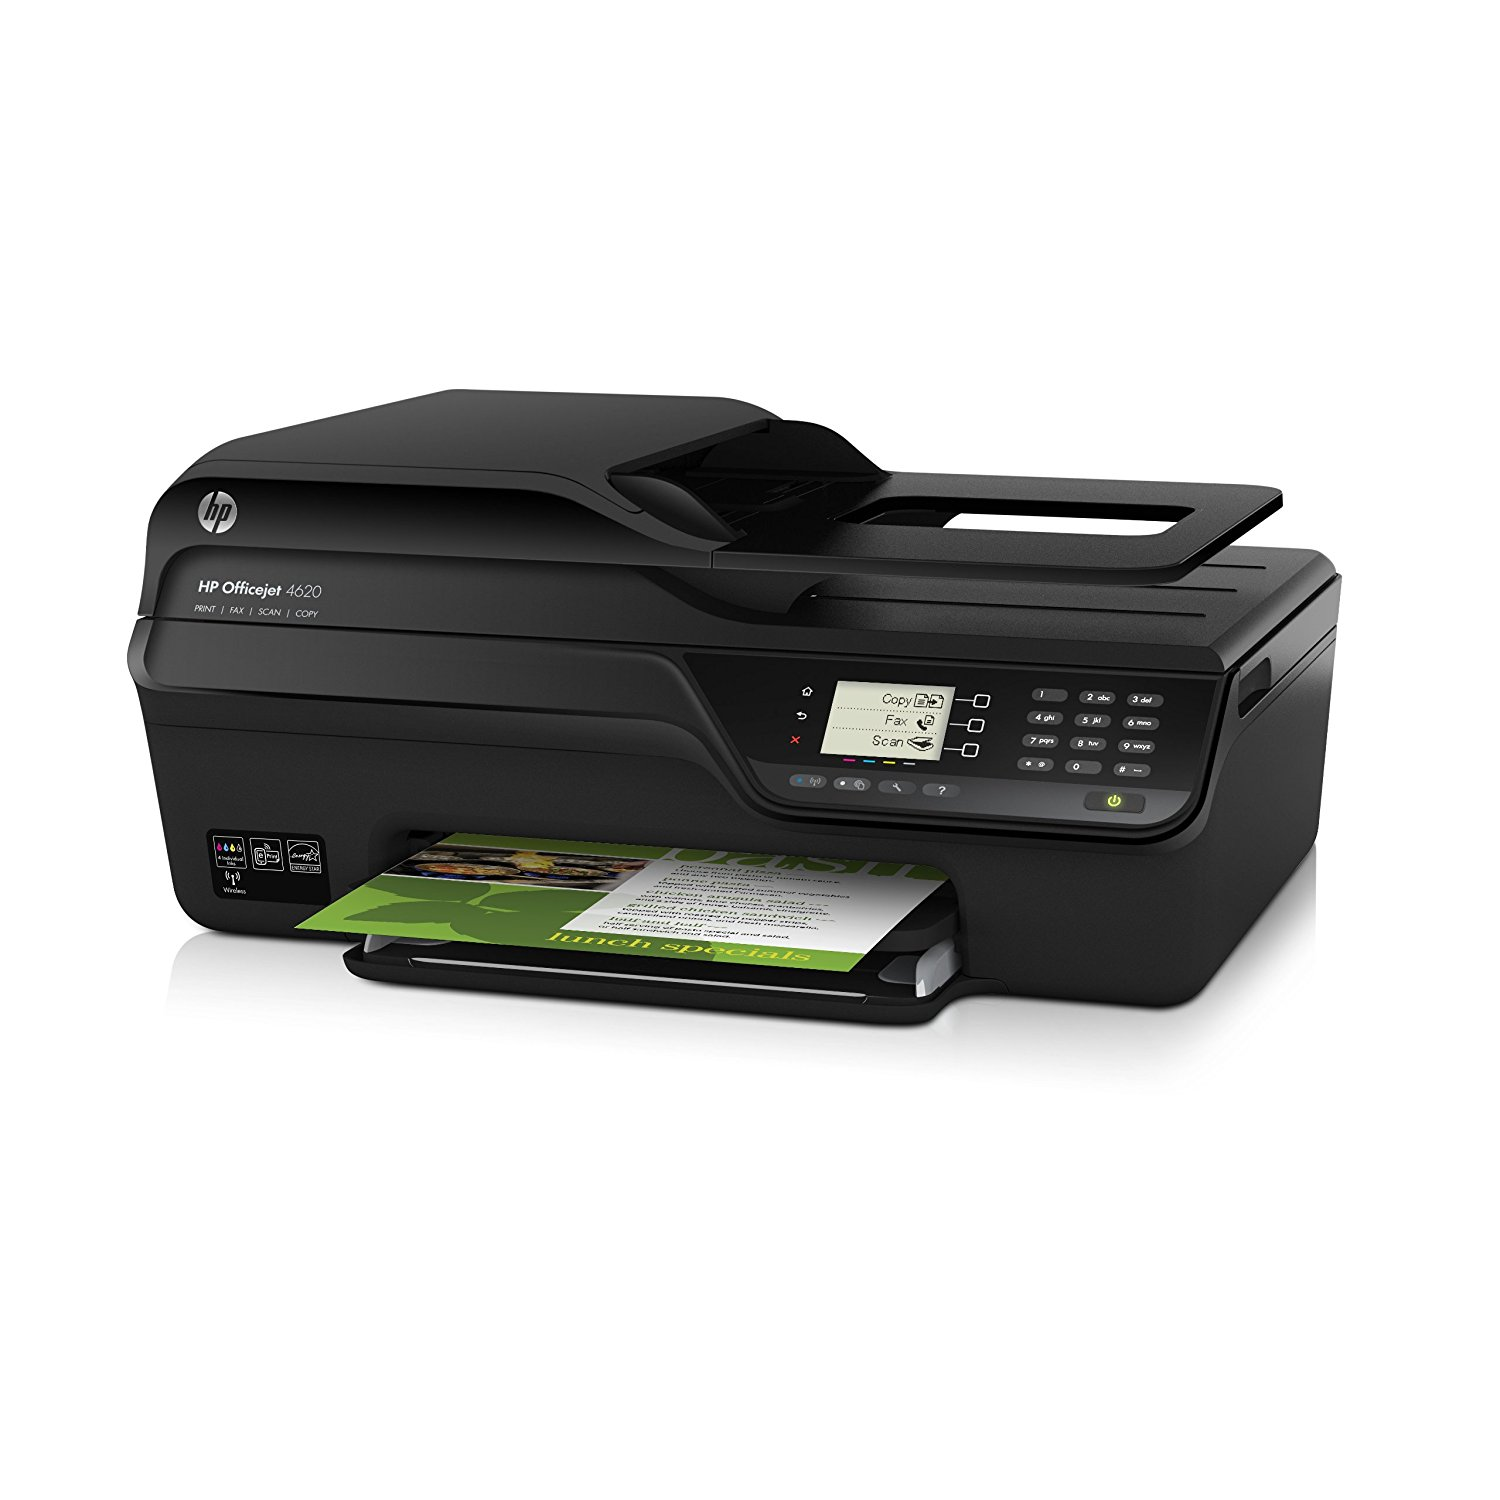 hp officejet 4620 software download for mac